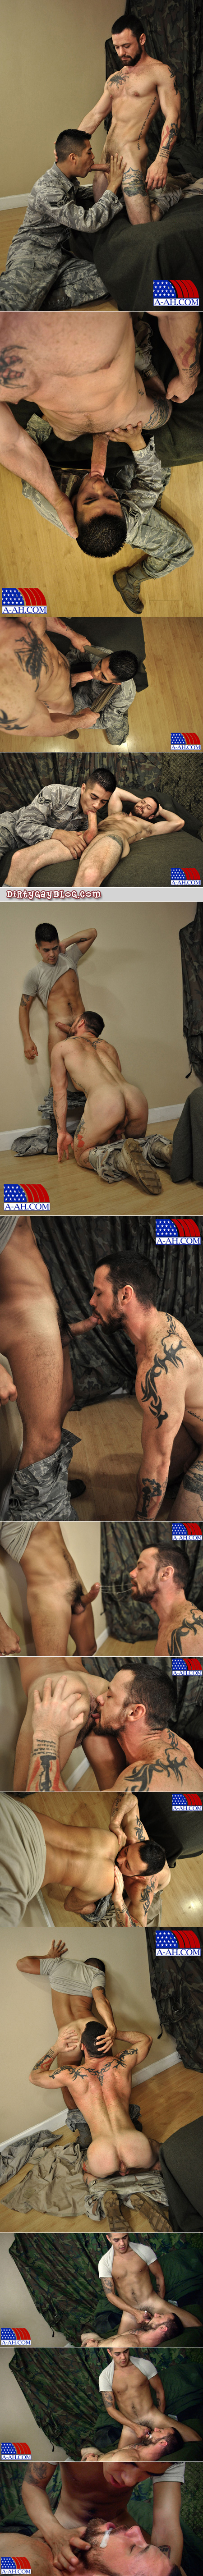 Bearded, muscular military guy trains a young recruit in sucking cock and giving cum facials.